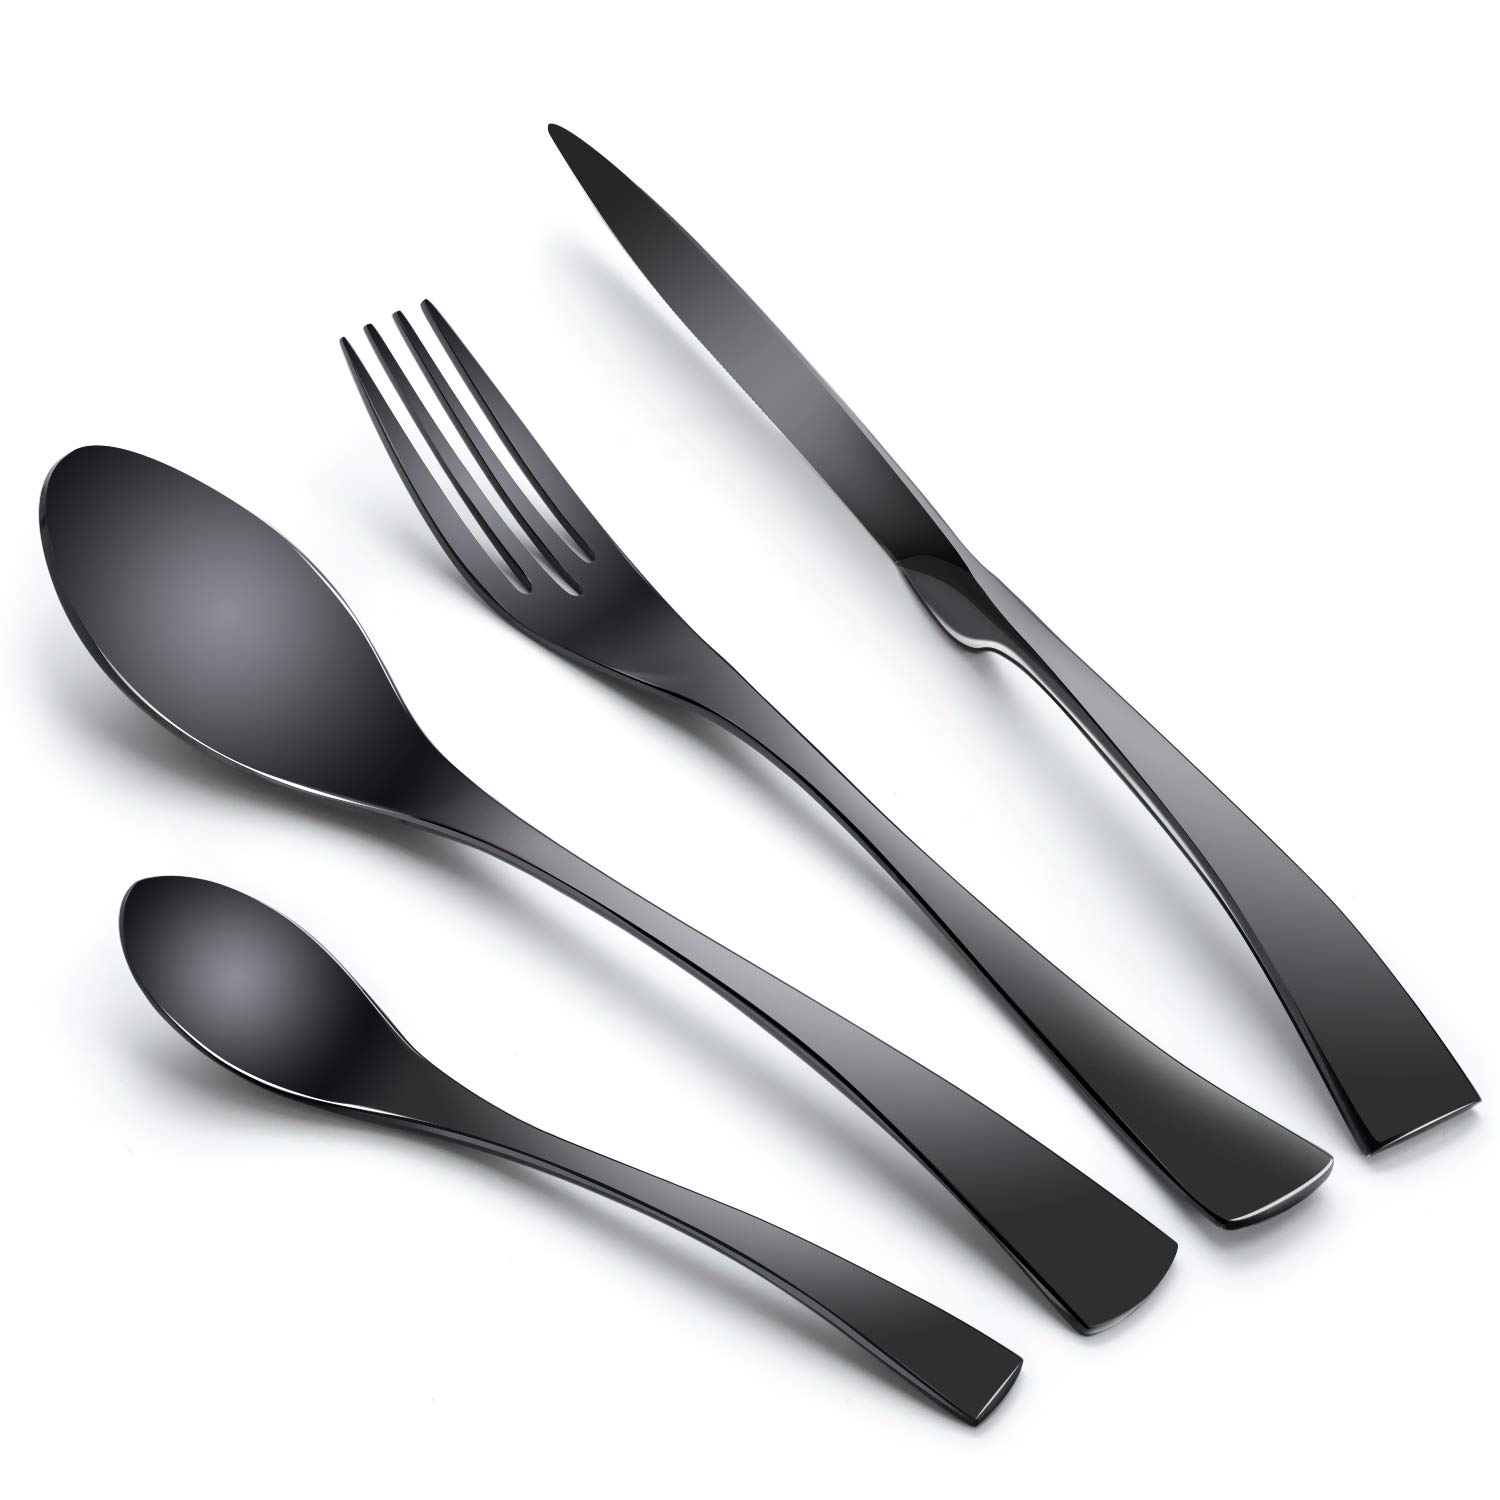 TaNaT 8-Piece Stainless Steel Flatware Set Titanium Black Plated Silverware Utensil Cutlery Set Western Tableware Set Service for 2, Modern Forks and Spoons Set,Mirror Polished and Dishwasher Safe